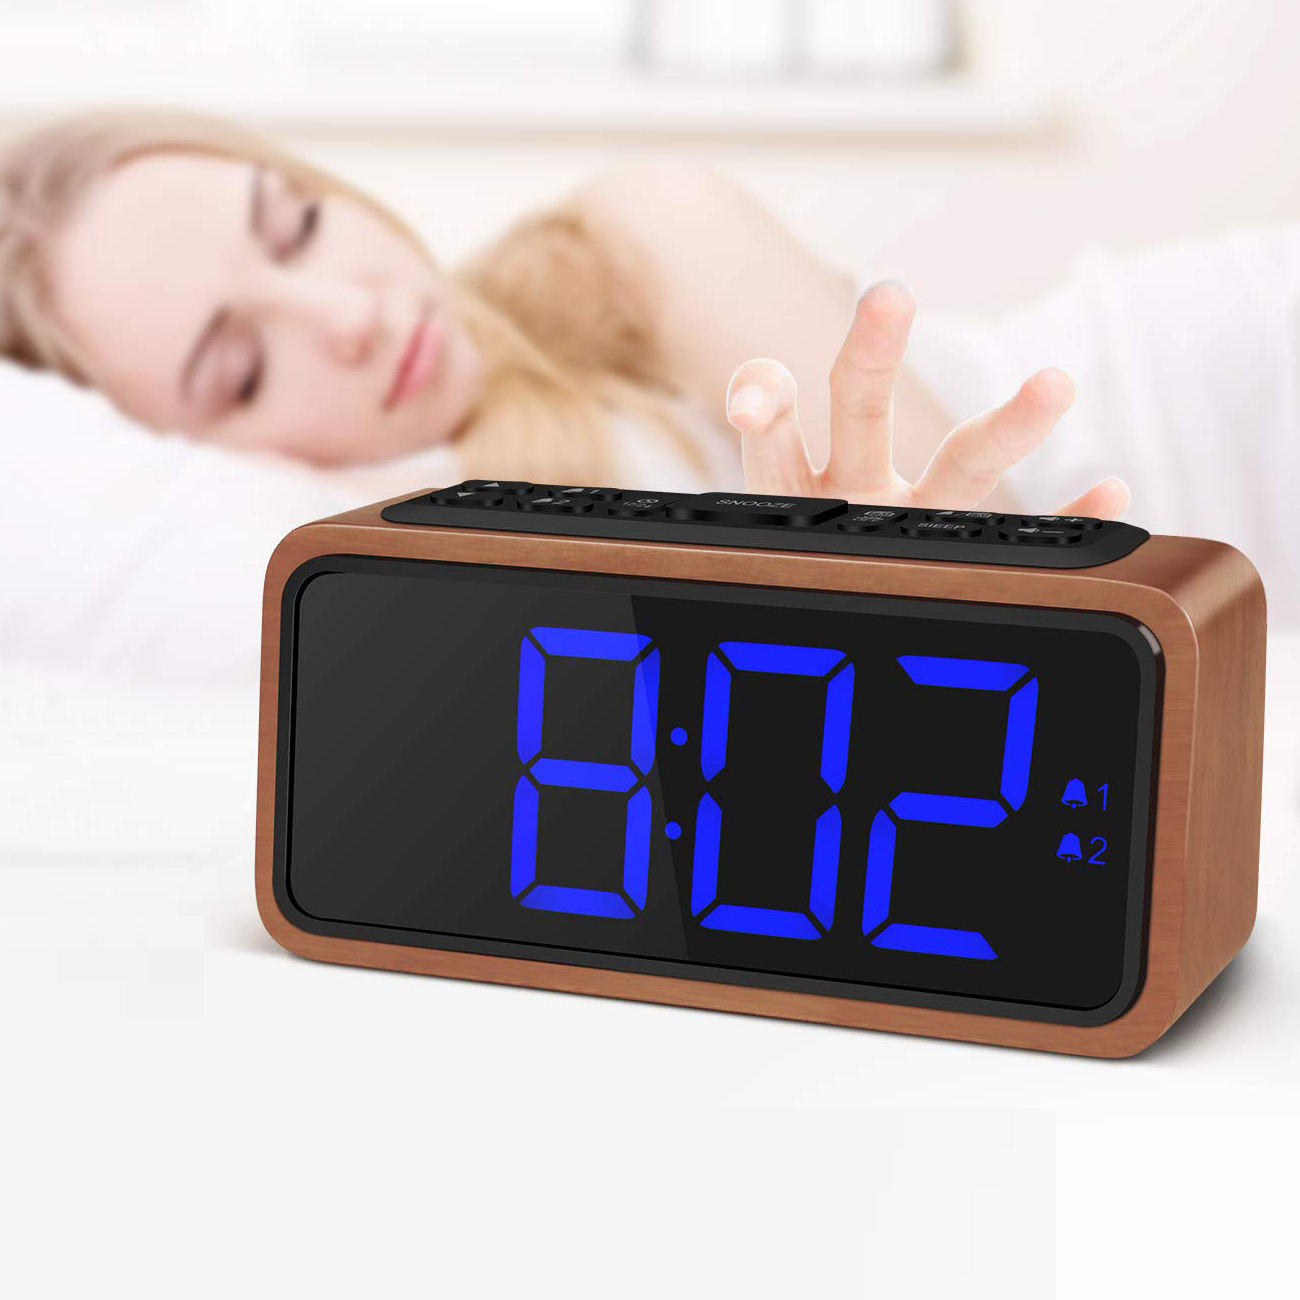 Digital Electronic Display Desk & Table Clocks Wooden and Plastic Style LED Alarm Clock